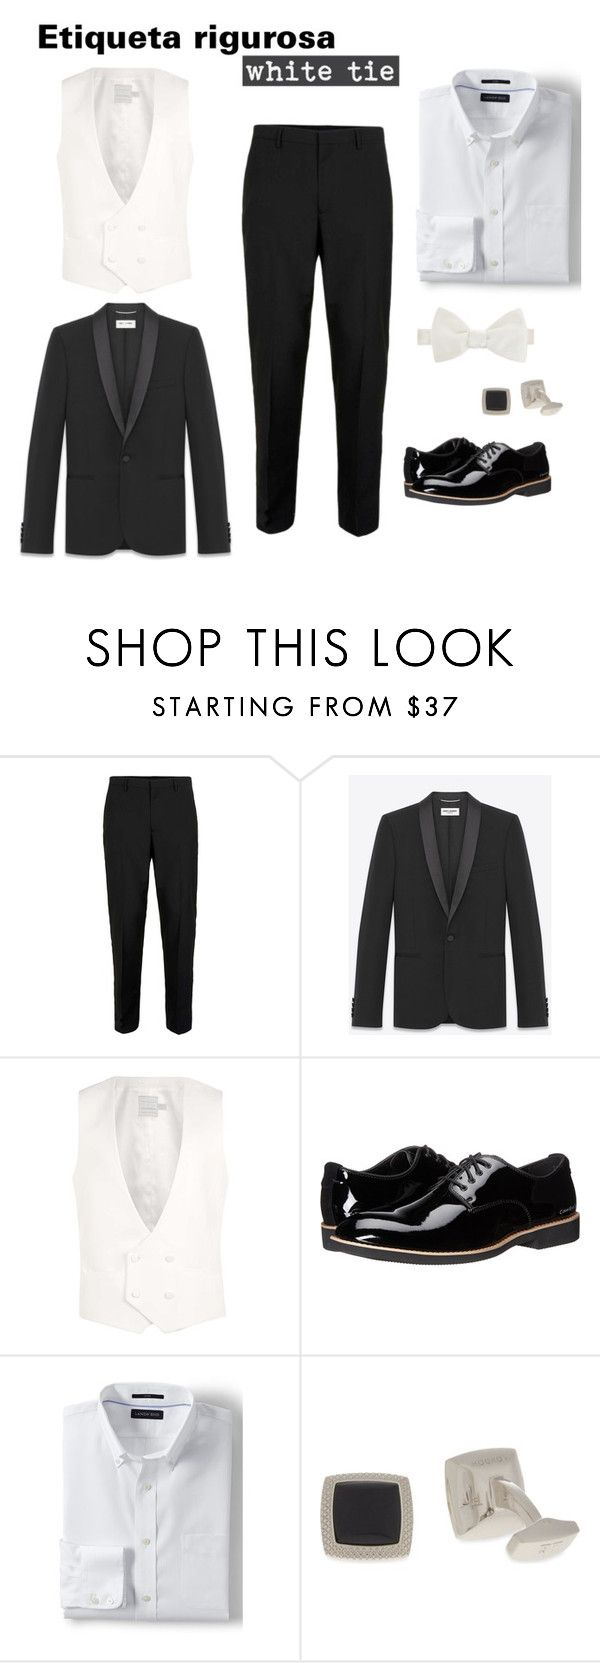 """Etiqueta rigurosa"" by arimacias on Polyvore featuring Topman, Yves Saint Laurent, Calvin Klein Jeans, Lands' End, Tateossian, Duchamp, men's fashion, menswear, menstyle y Firgun"